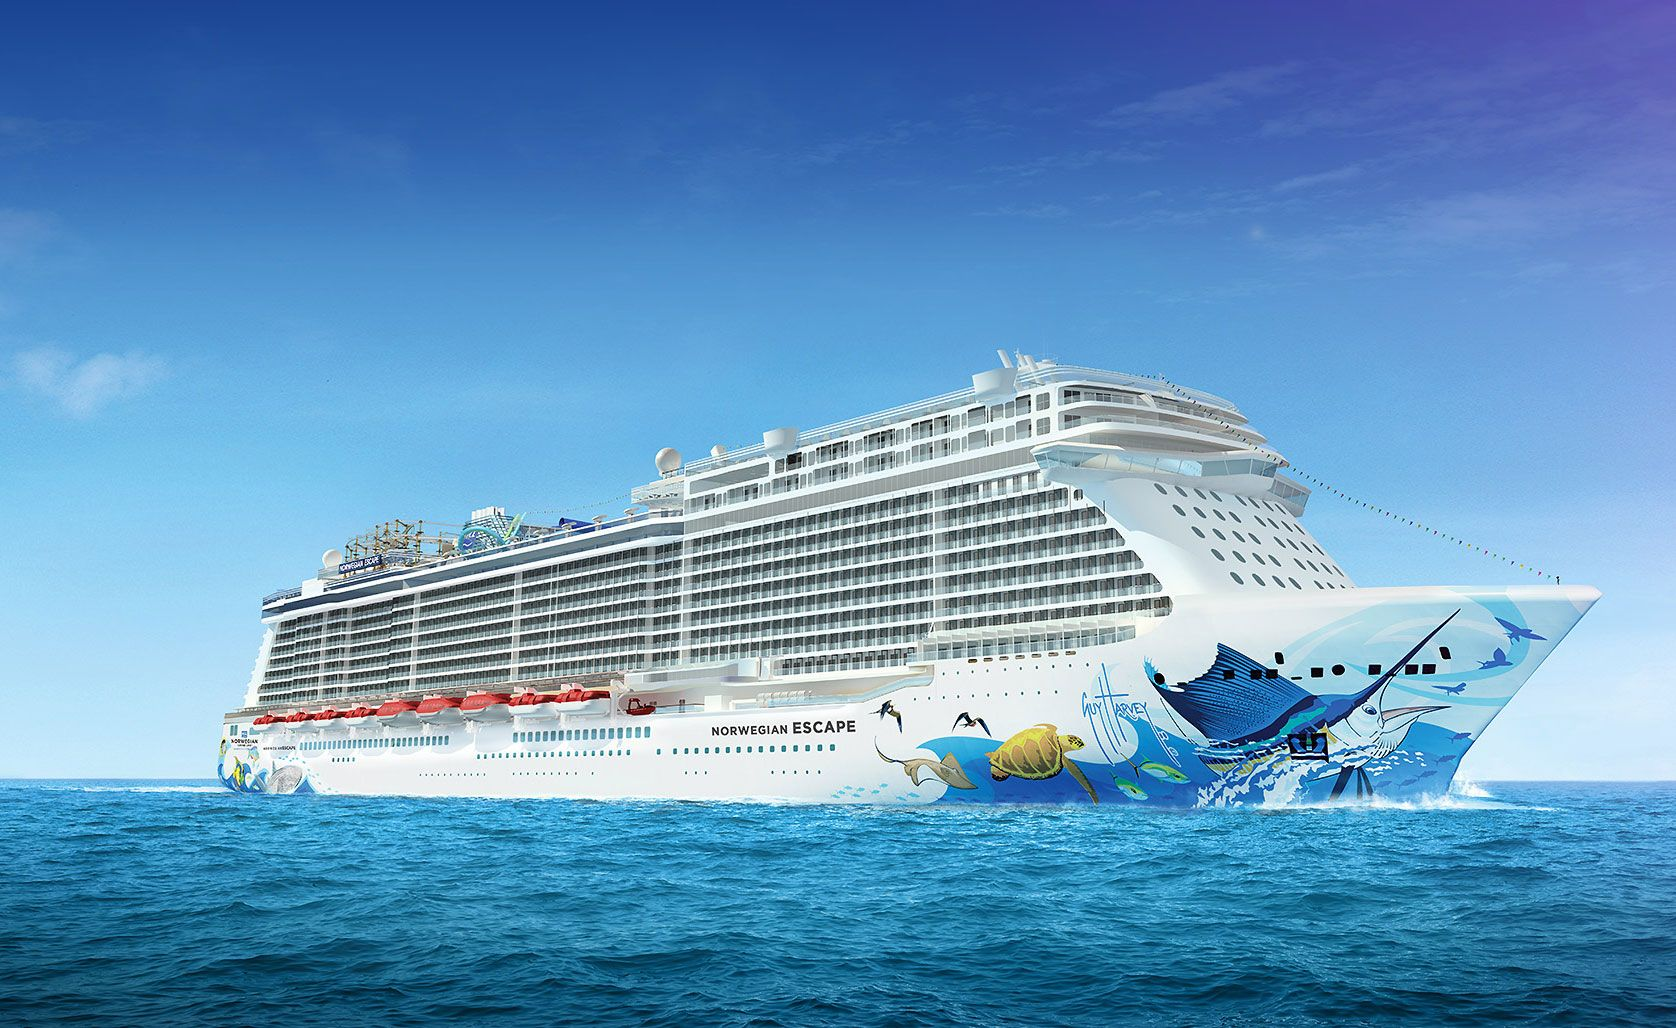 52 New Cruise Ships Will Debut By 2018 25 Planned For